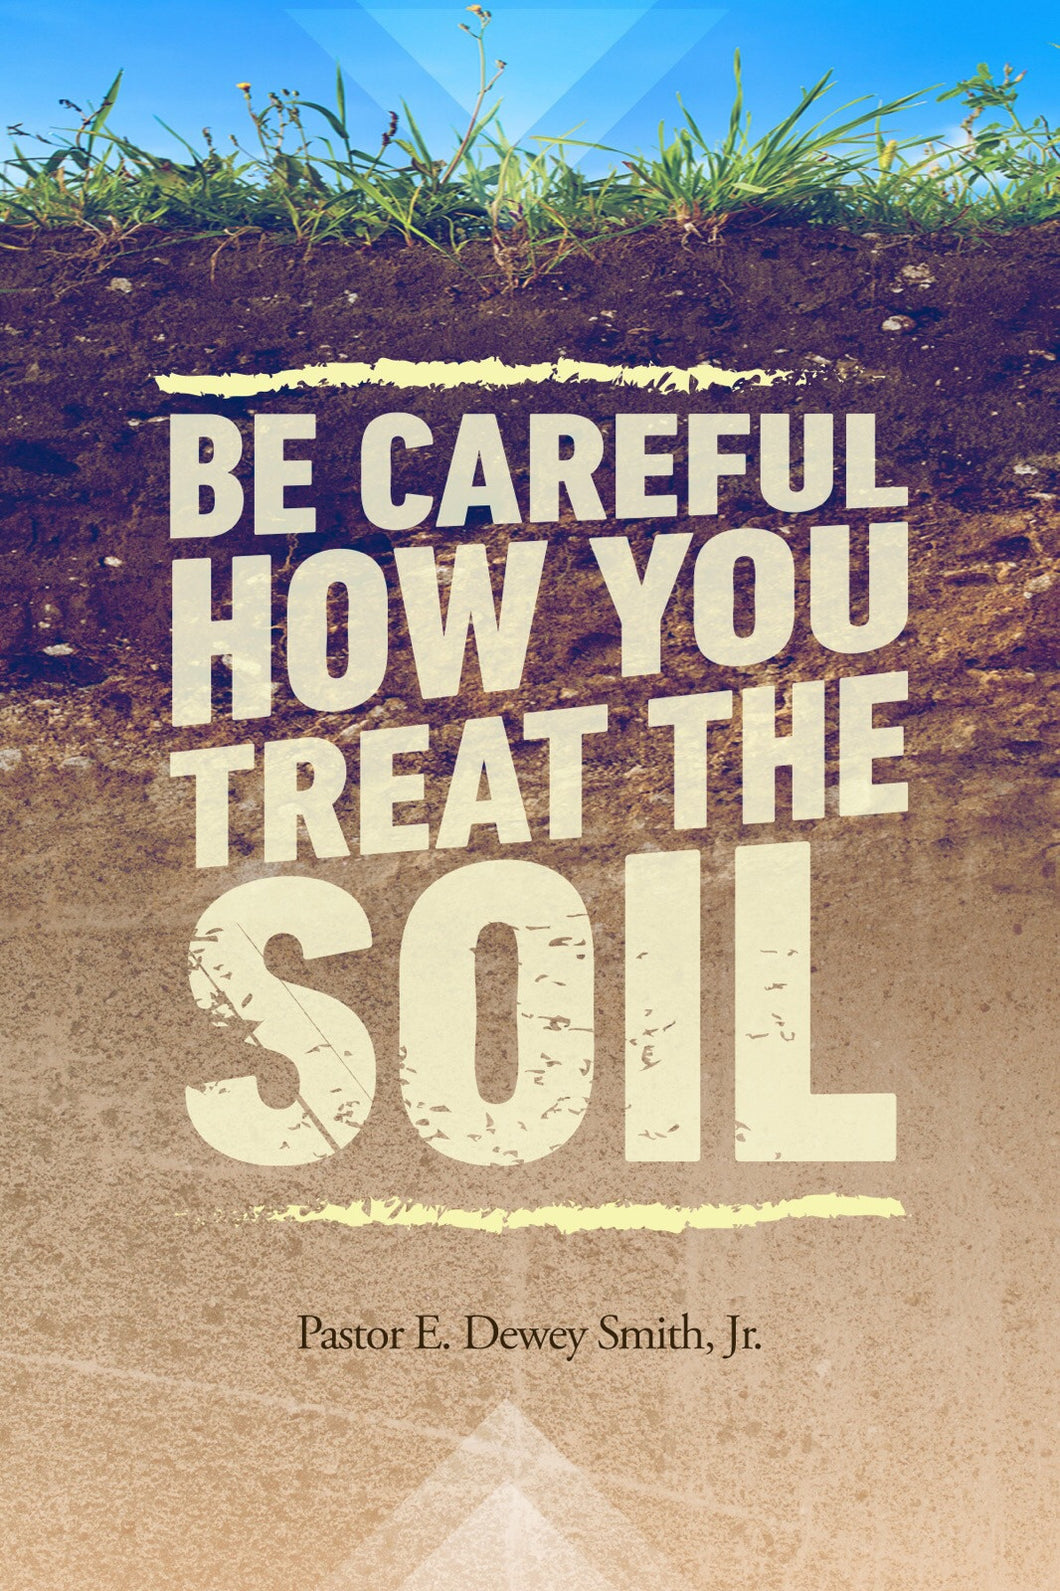 Be Careful How You Treat the Soil